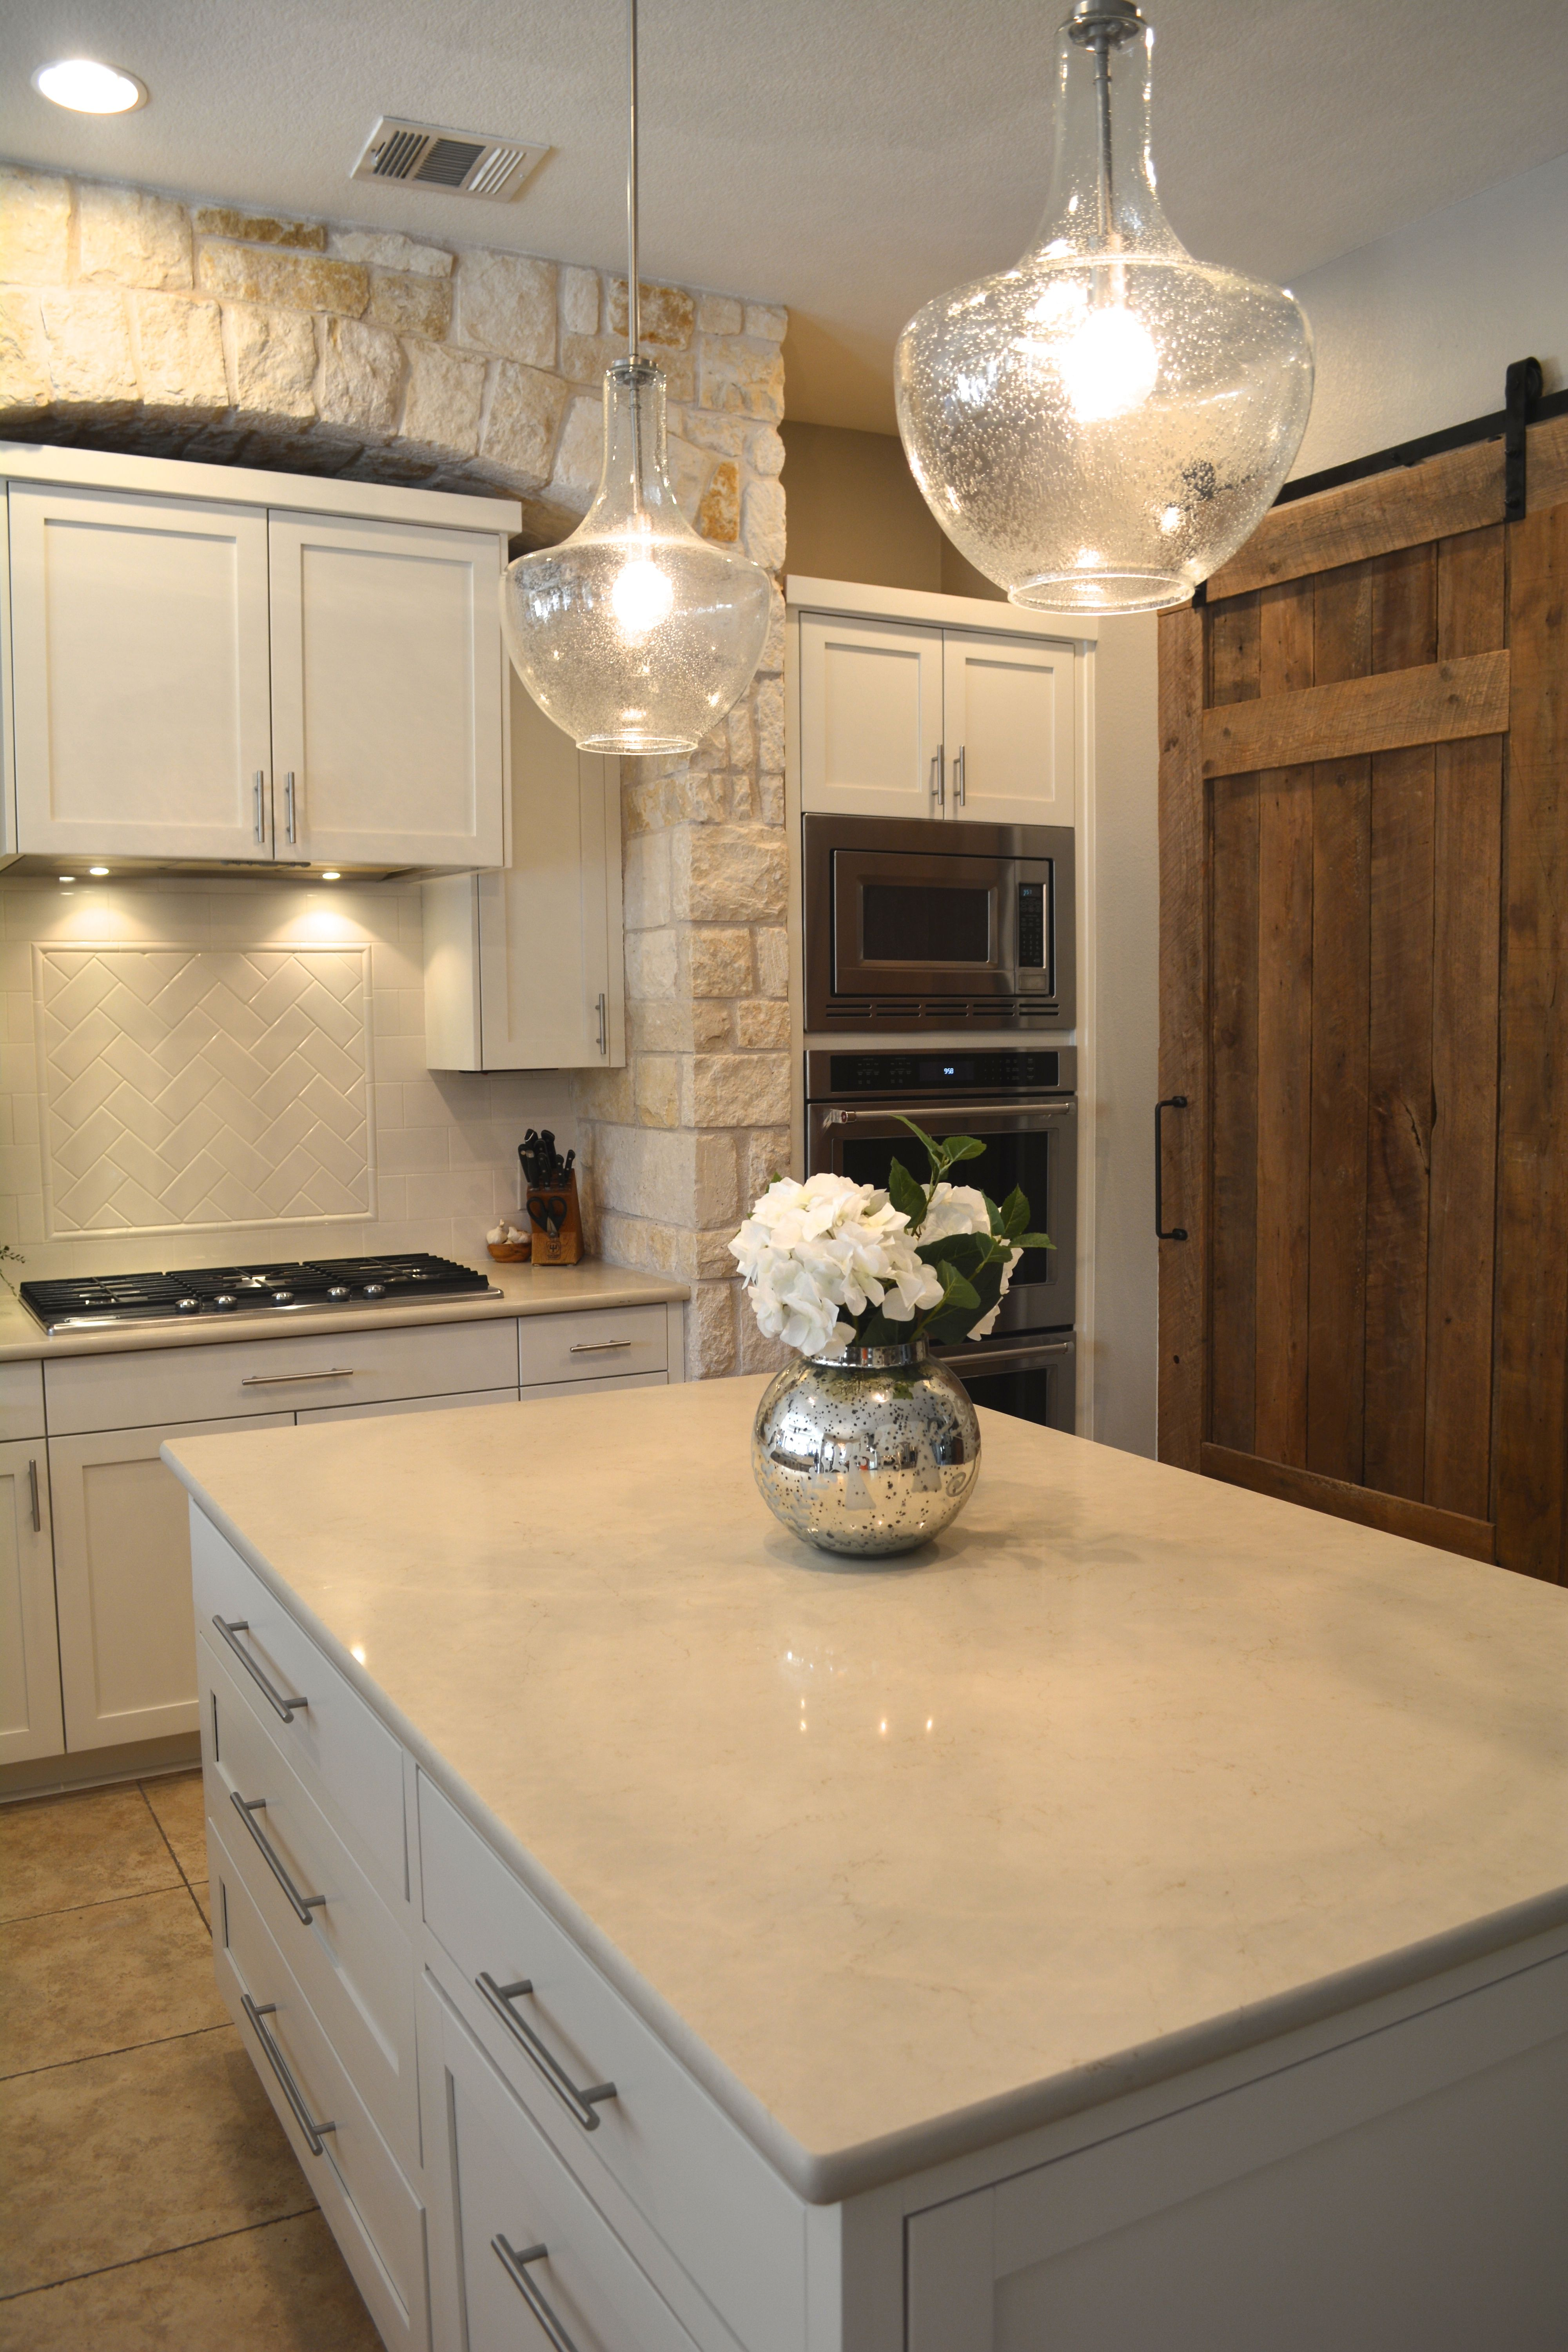 How Much For Marble Countertops We Replaced The Gold Speckled Granite With A Creamy